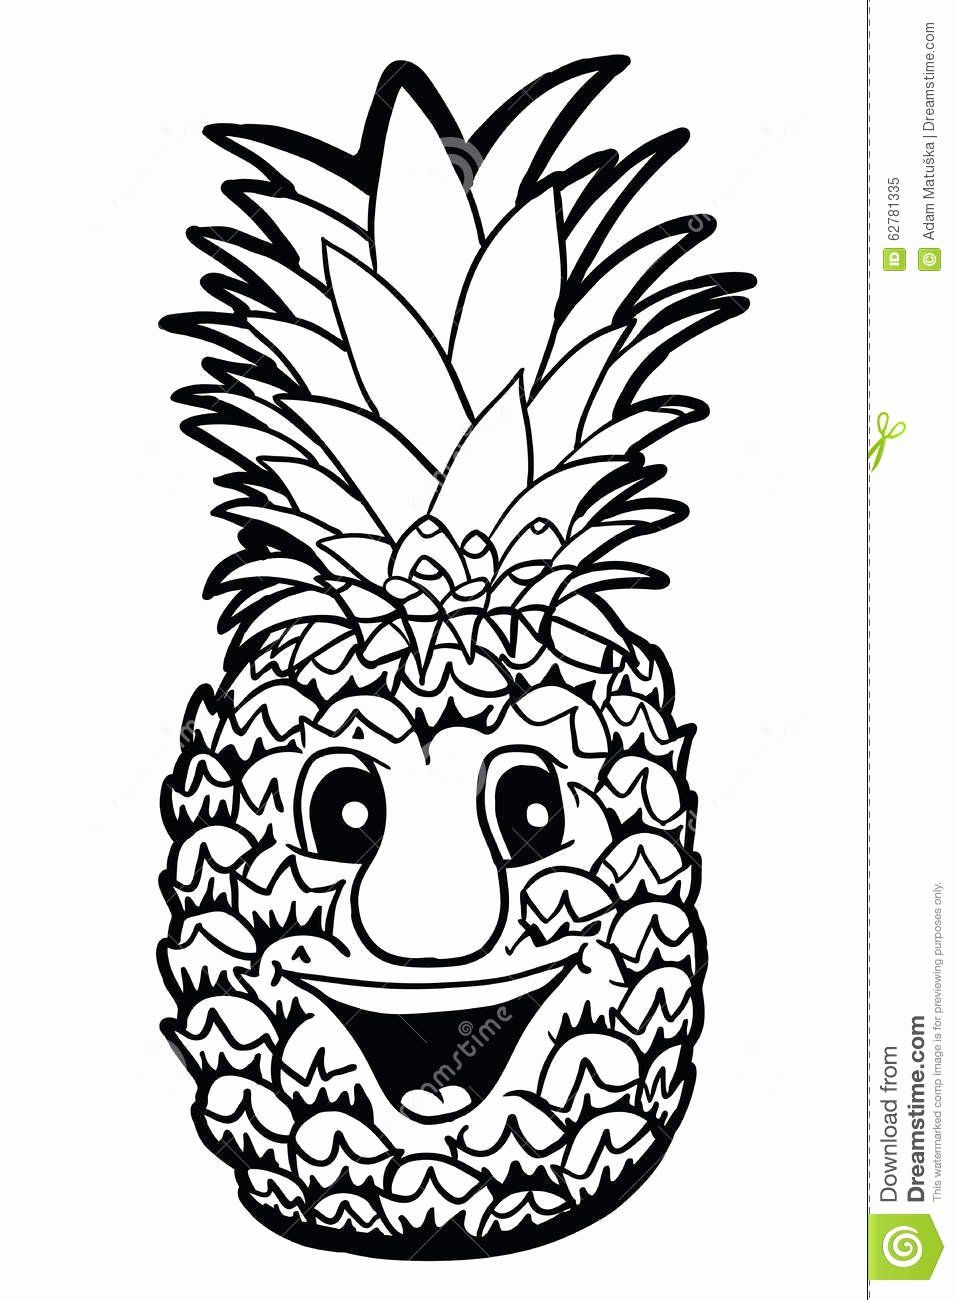 Cute Pineapple Coloring Page Inspirational Pineapple With Smile Stock Vector Image In 2020 Cat Coloring Page Pokemon Coloring Pages Bear Coloring Pages